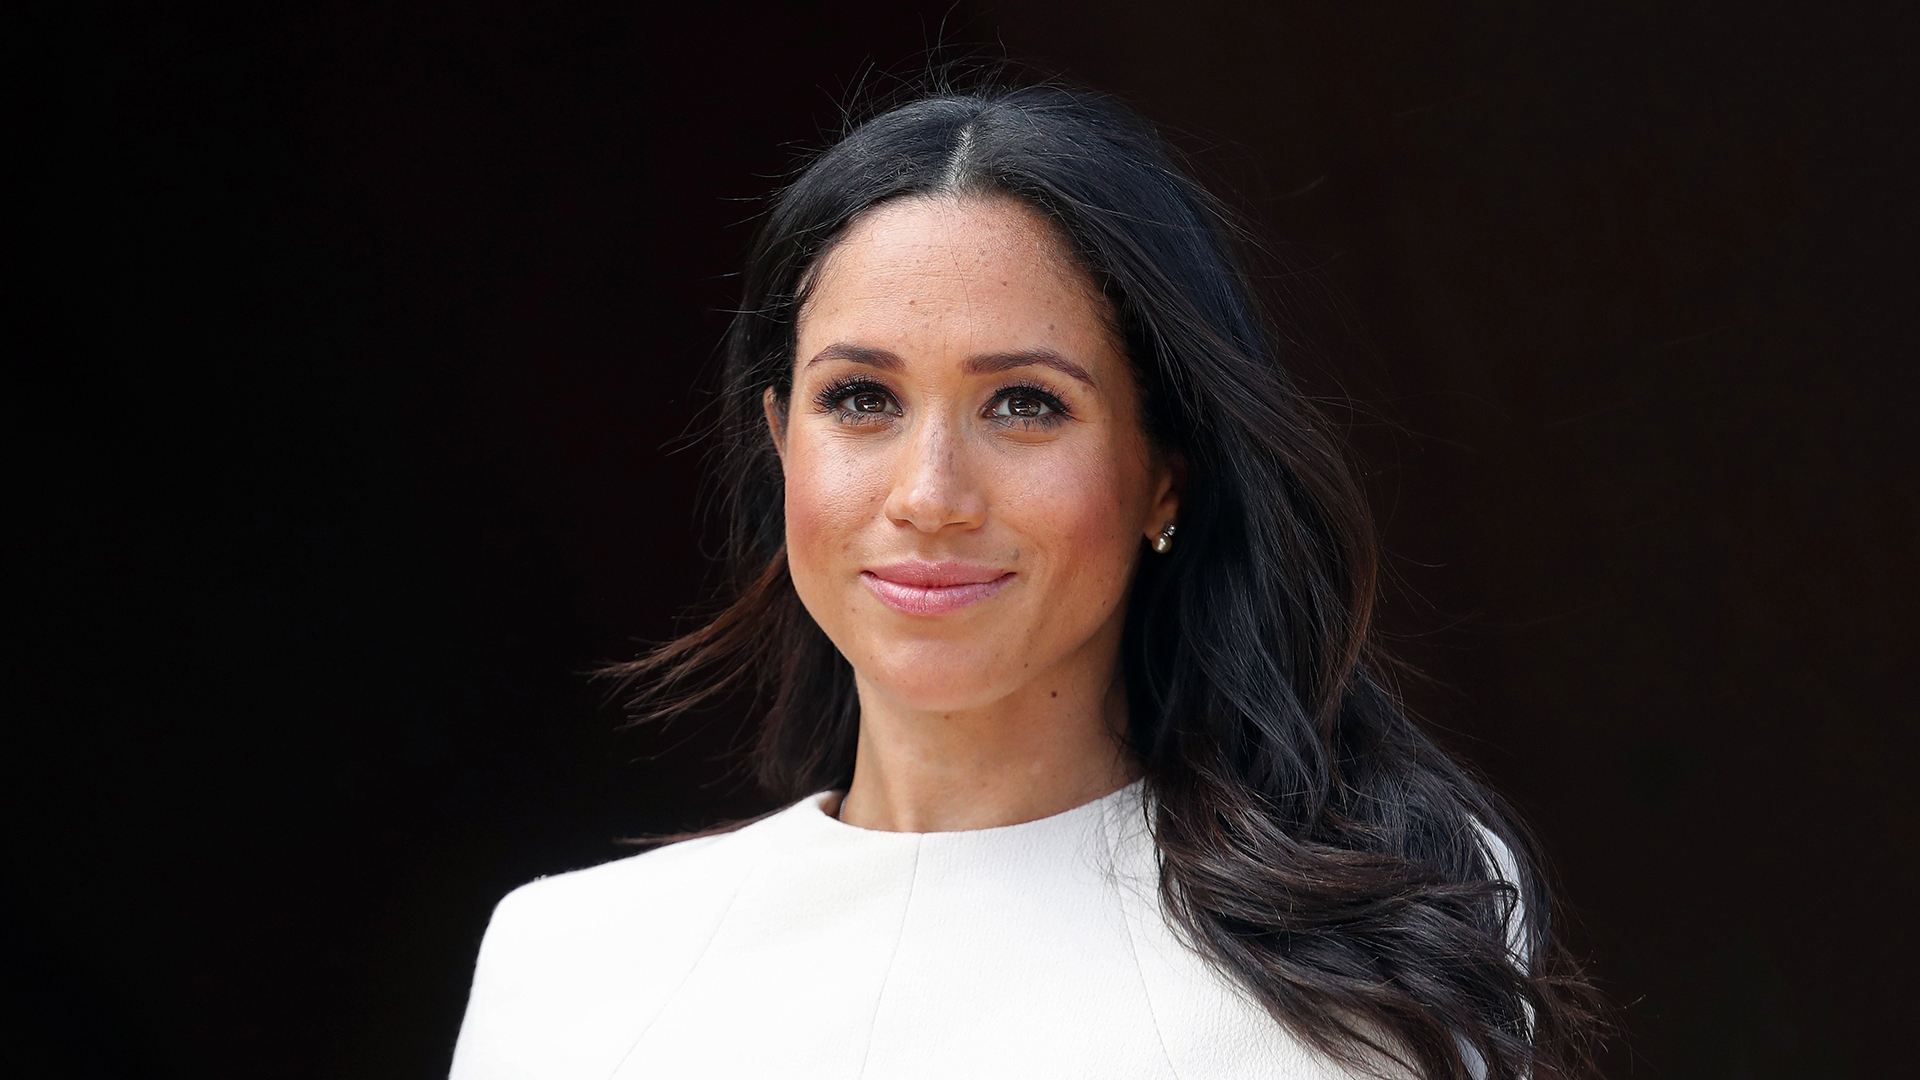 August 4, 1981: Meghan, Duchess of Sussex Was Born